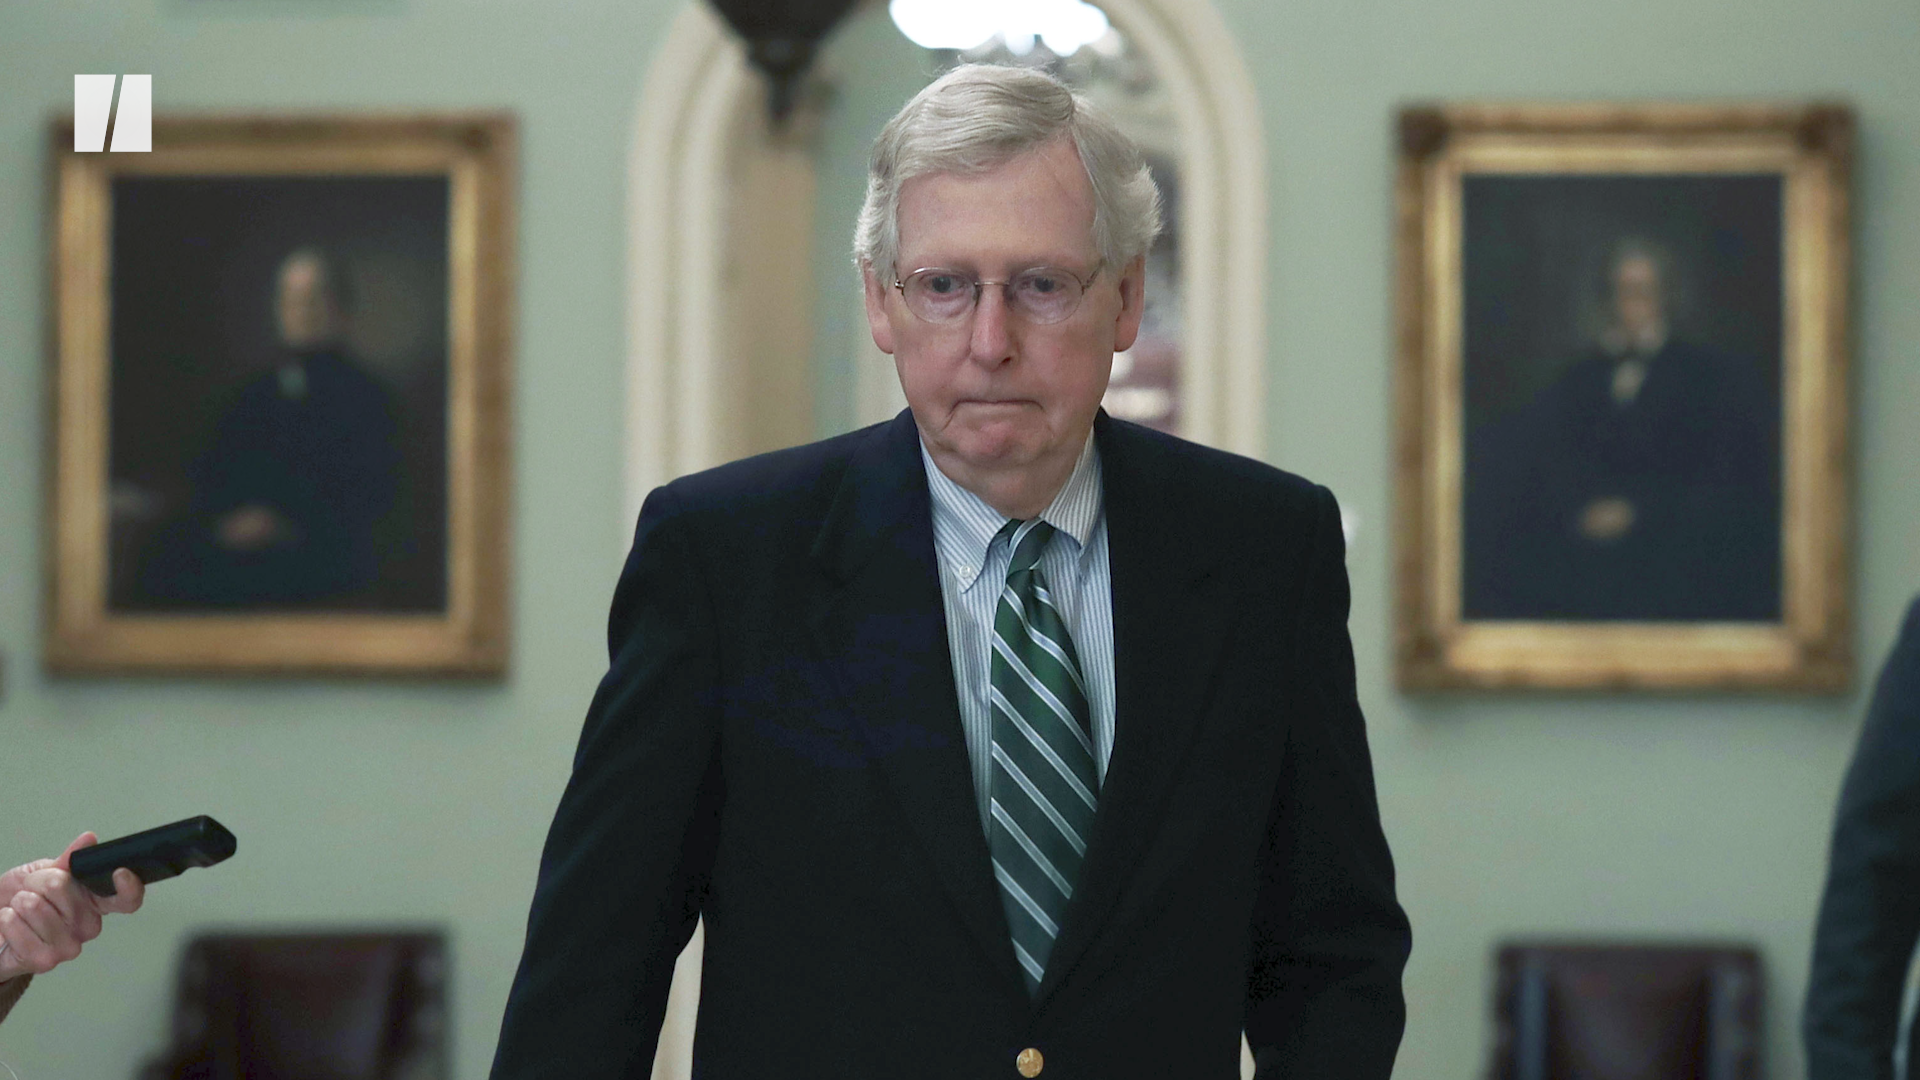 Carl Bernstein Hits Mitch McConnell With Scathing New Nickname That Explodes On Twitter